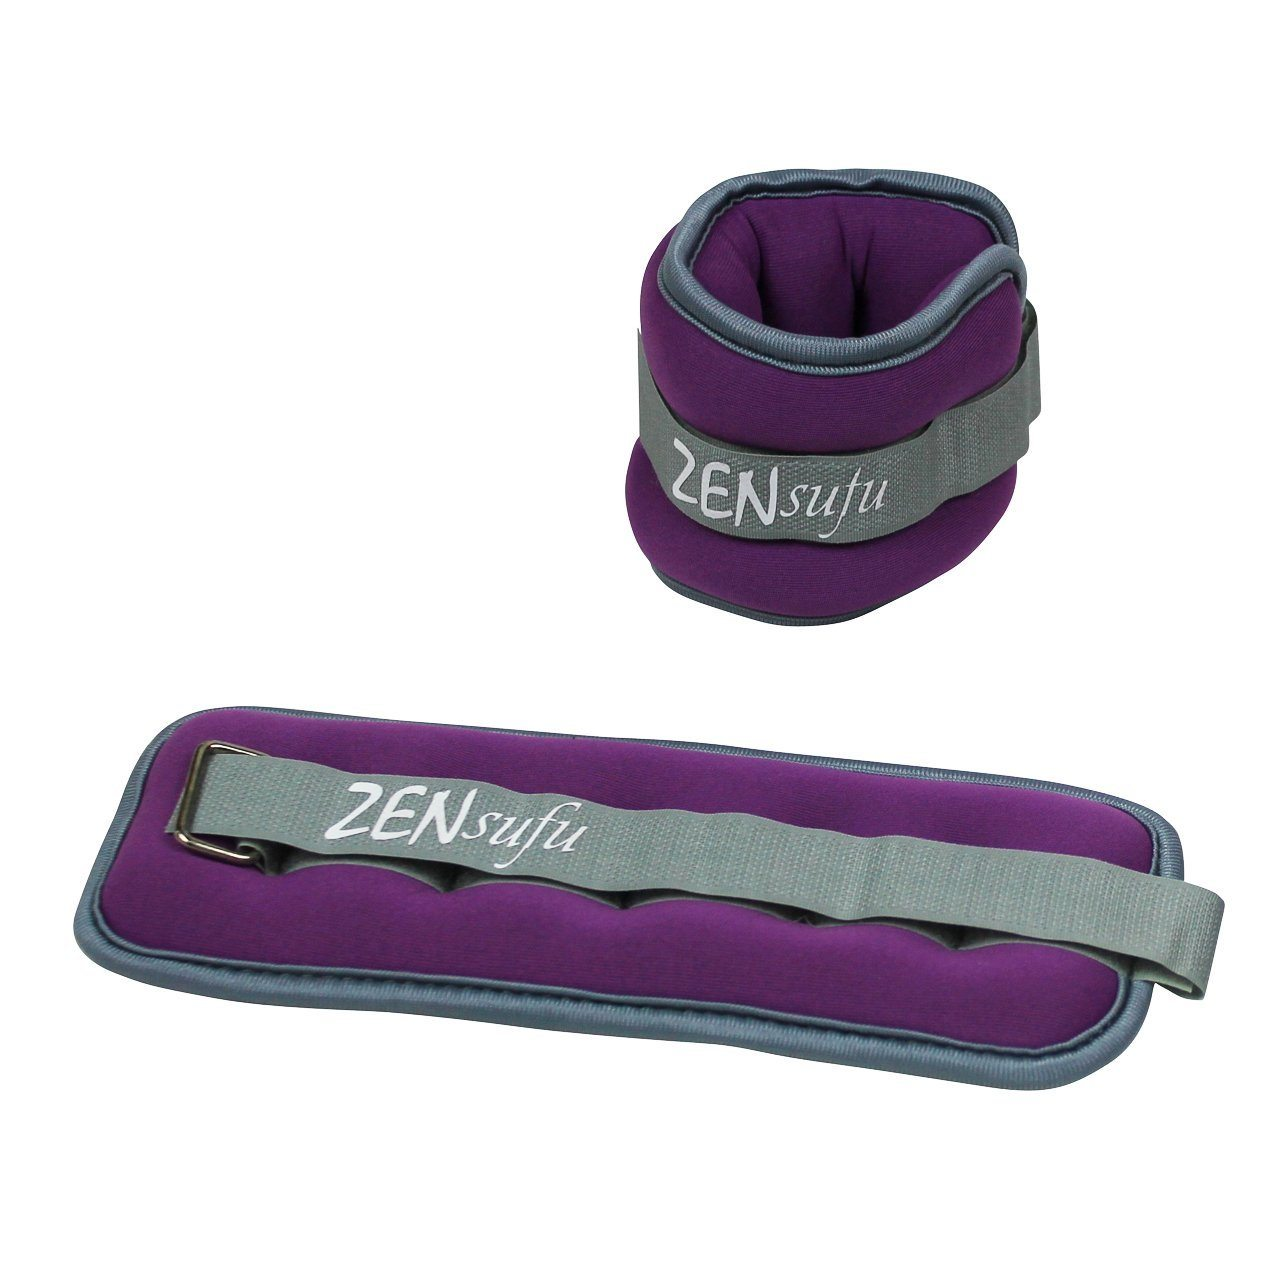 Zensufu Ankle/Wrist Weights